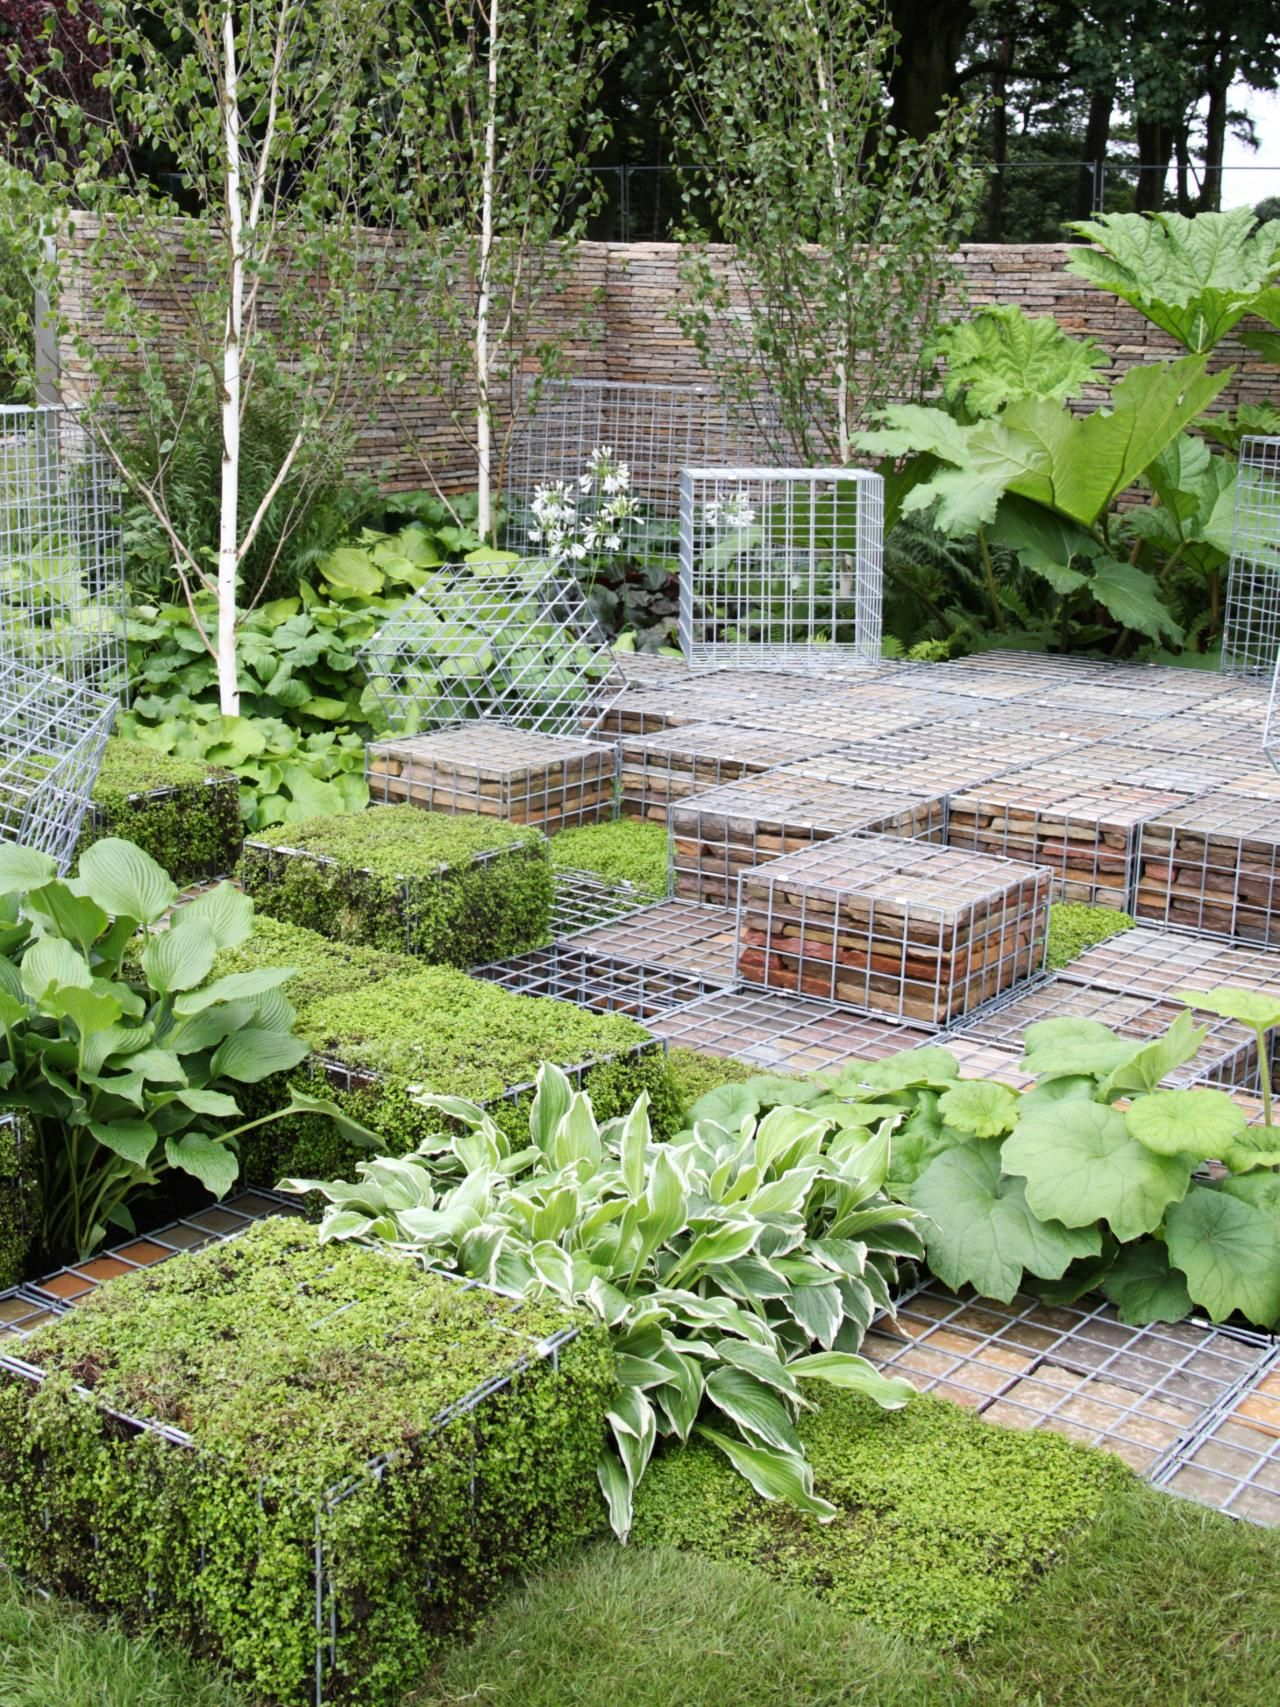 This modern garden uses gabions filled with stones and moss stacked next to hostas and other leafy plants for a unique, stylish look.